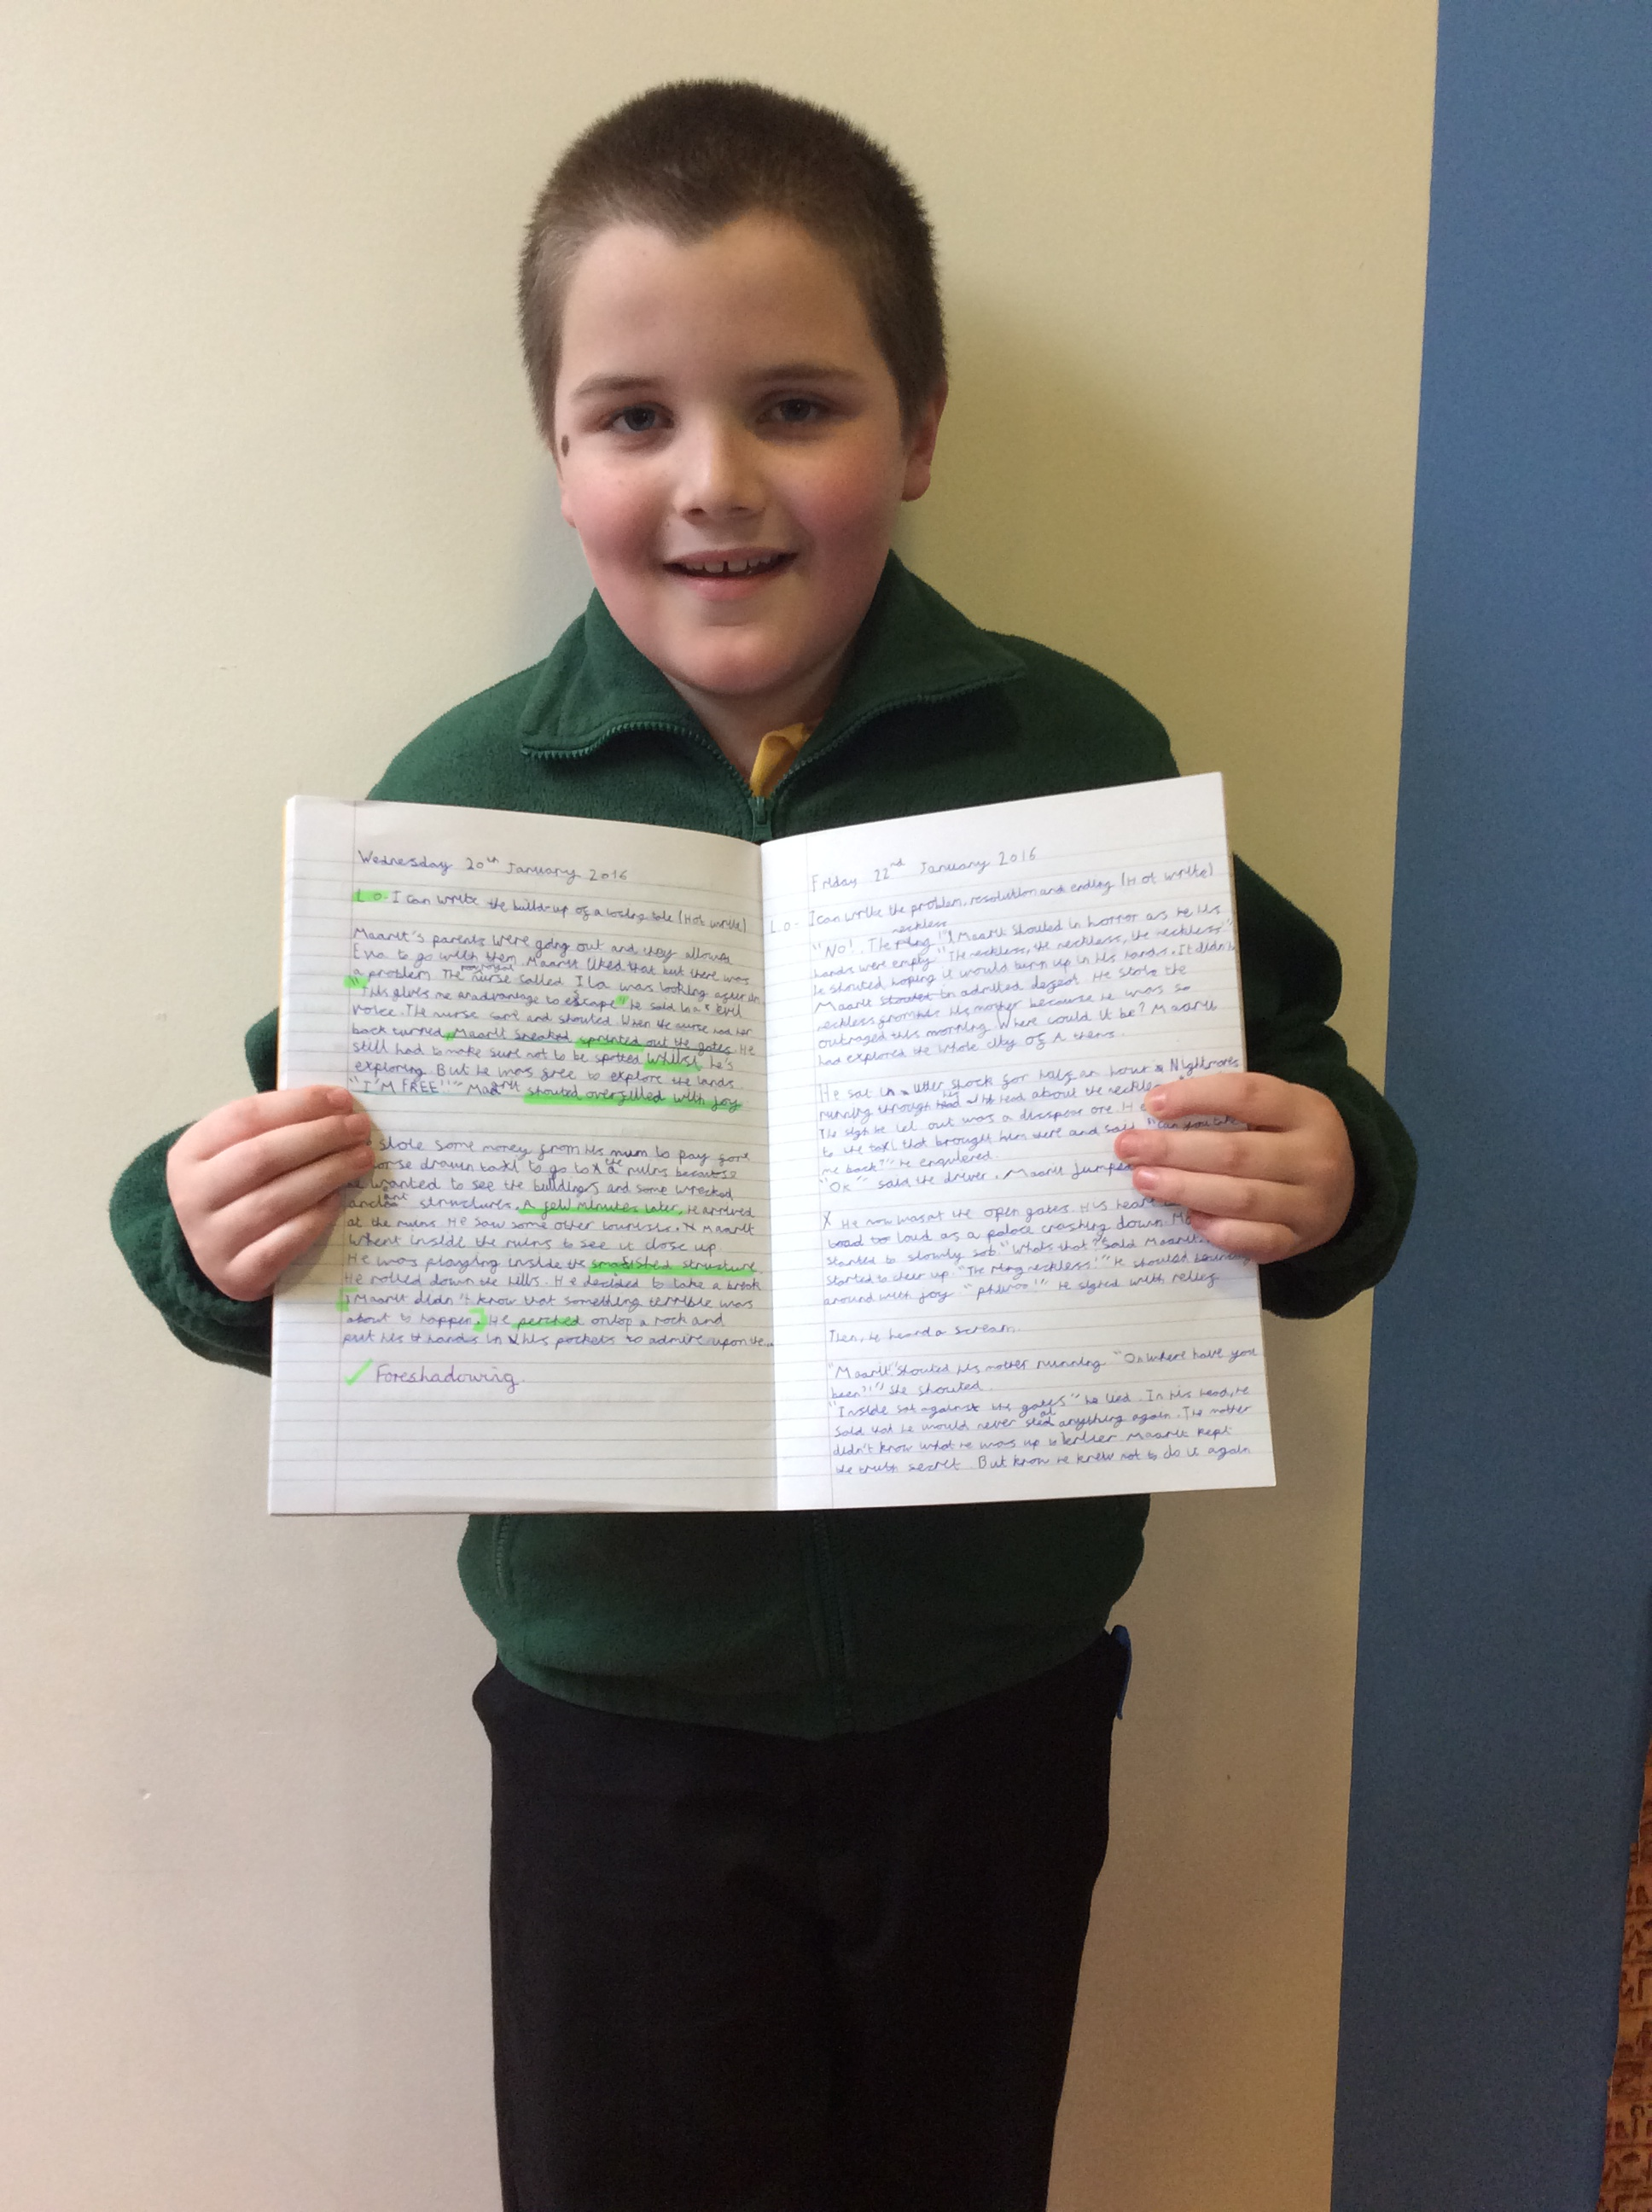 Kings Forest Primary School Kingswood Bristol Blog Archive Losing Tales In Year 4